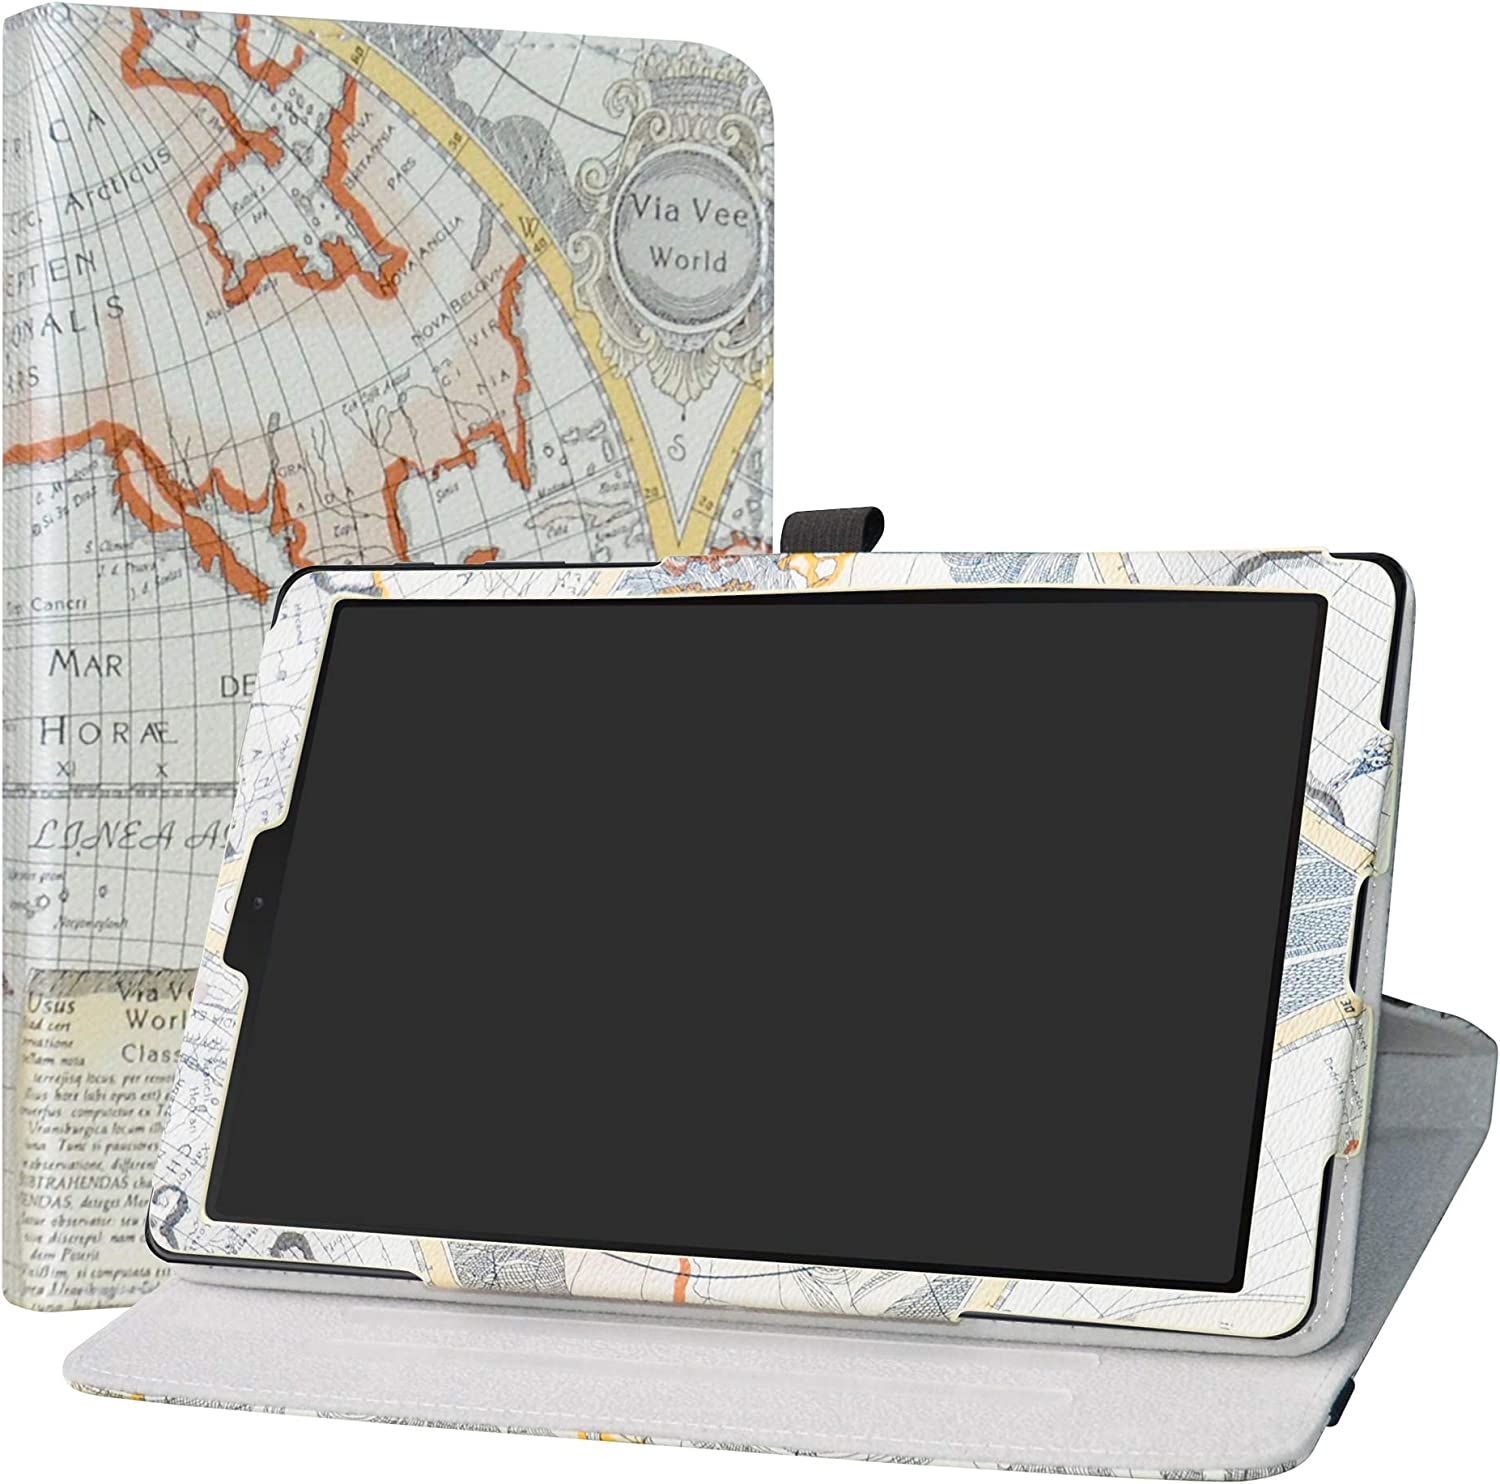 """Galaxy Tab A 10.1 T510 Rotating Case,LiuShan 360 Degree Rotation Stand PU Leather with Cute Pattern for 10.1"""" Samsung Galaxy Tab A 10.1 T510 T515 2019 Tablet PC,Map White"""